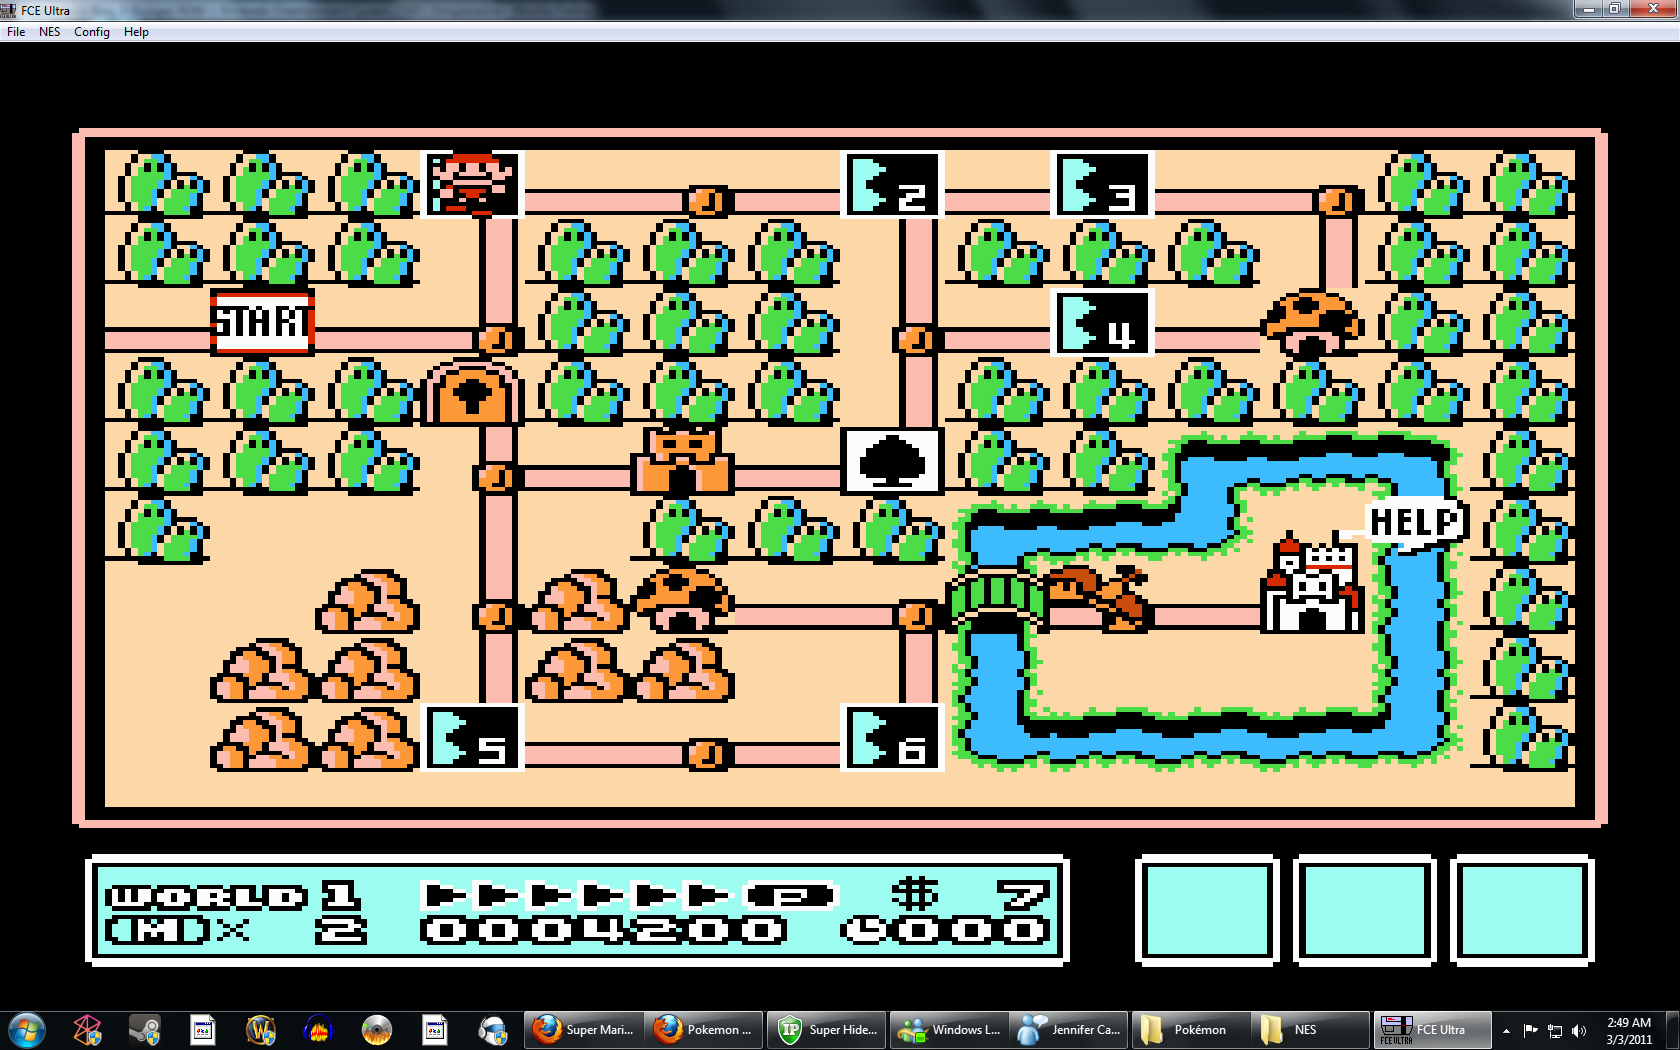 Super Mario Bros Images For Nes Old School Games Fans Mod Db